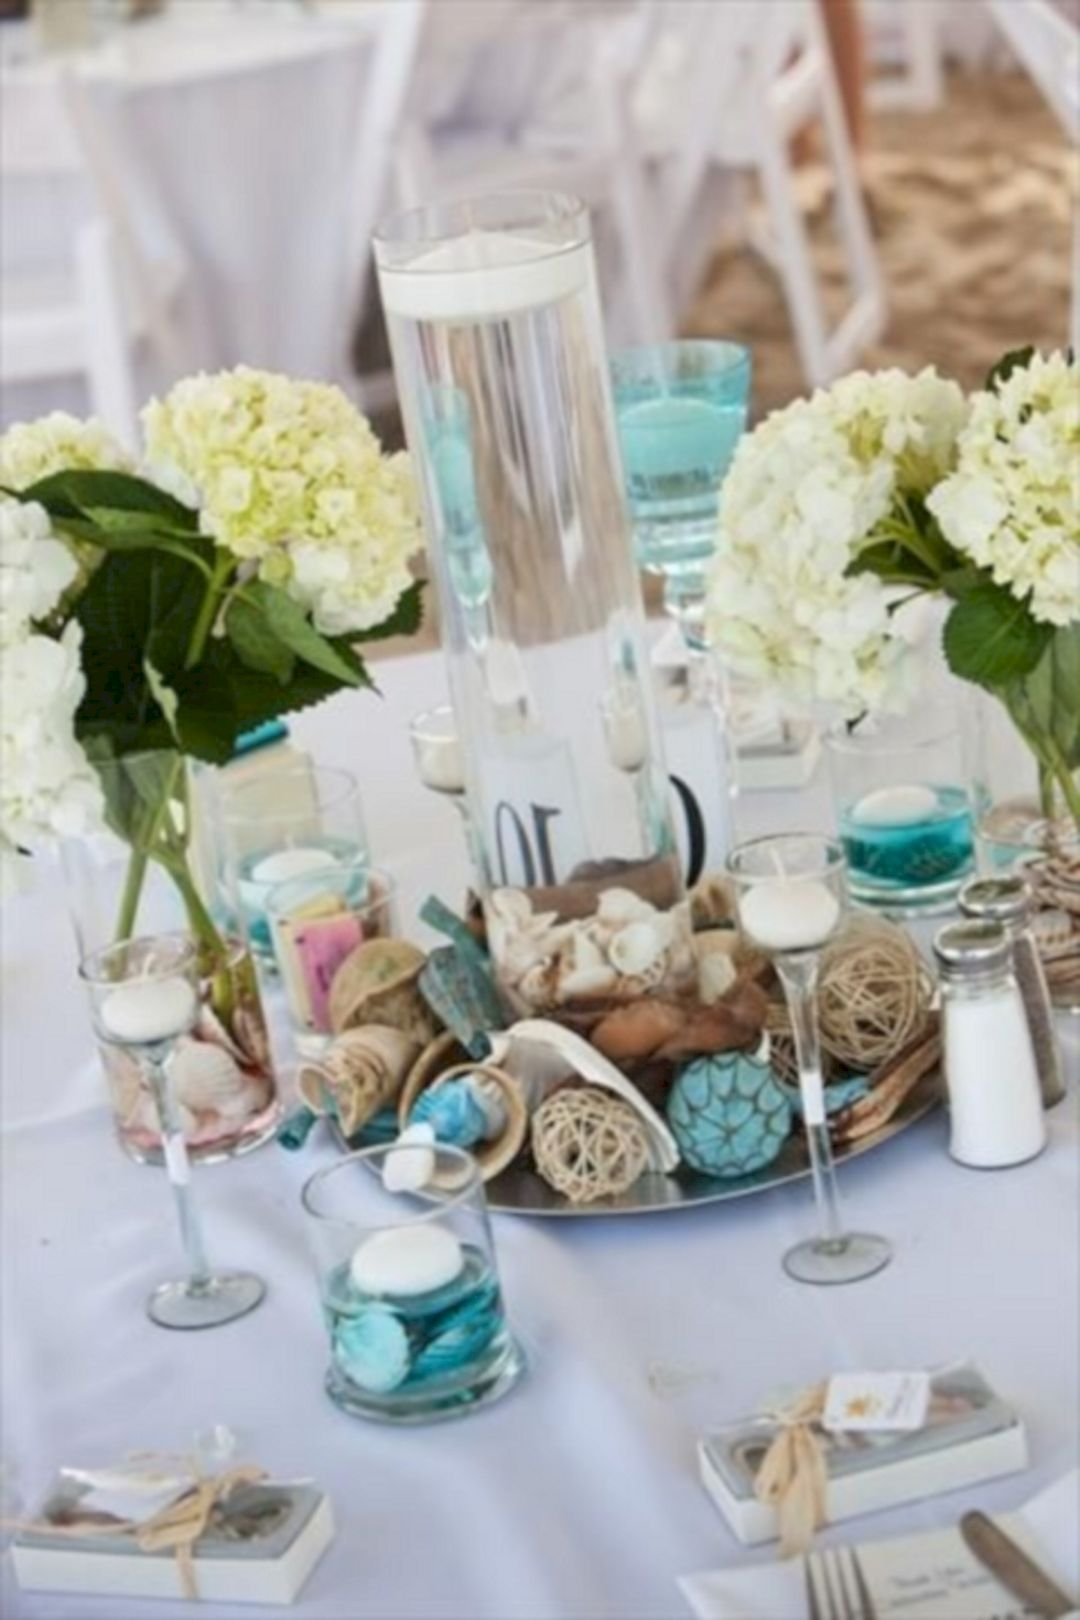 25 Amazing Beach Centerpieces Ideas For Your Wedding Inspiration Beach Wedding Coral Beach Wedding Table Centerpieces Beach Wedding Reception Centerpieces